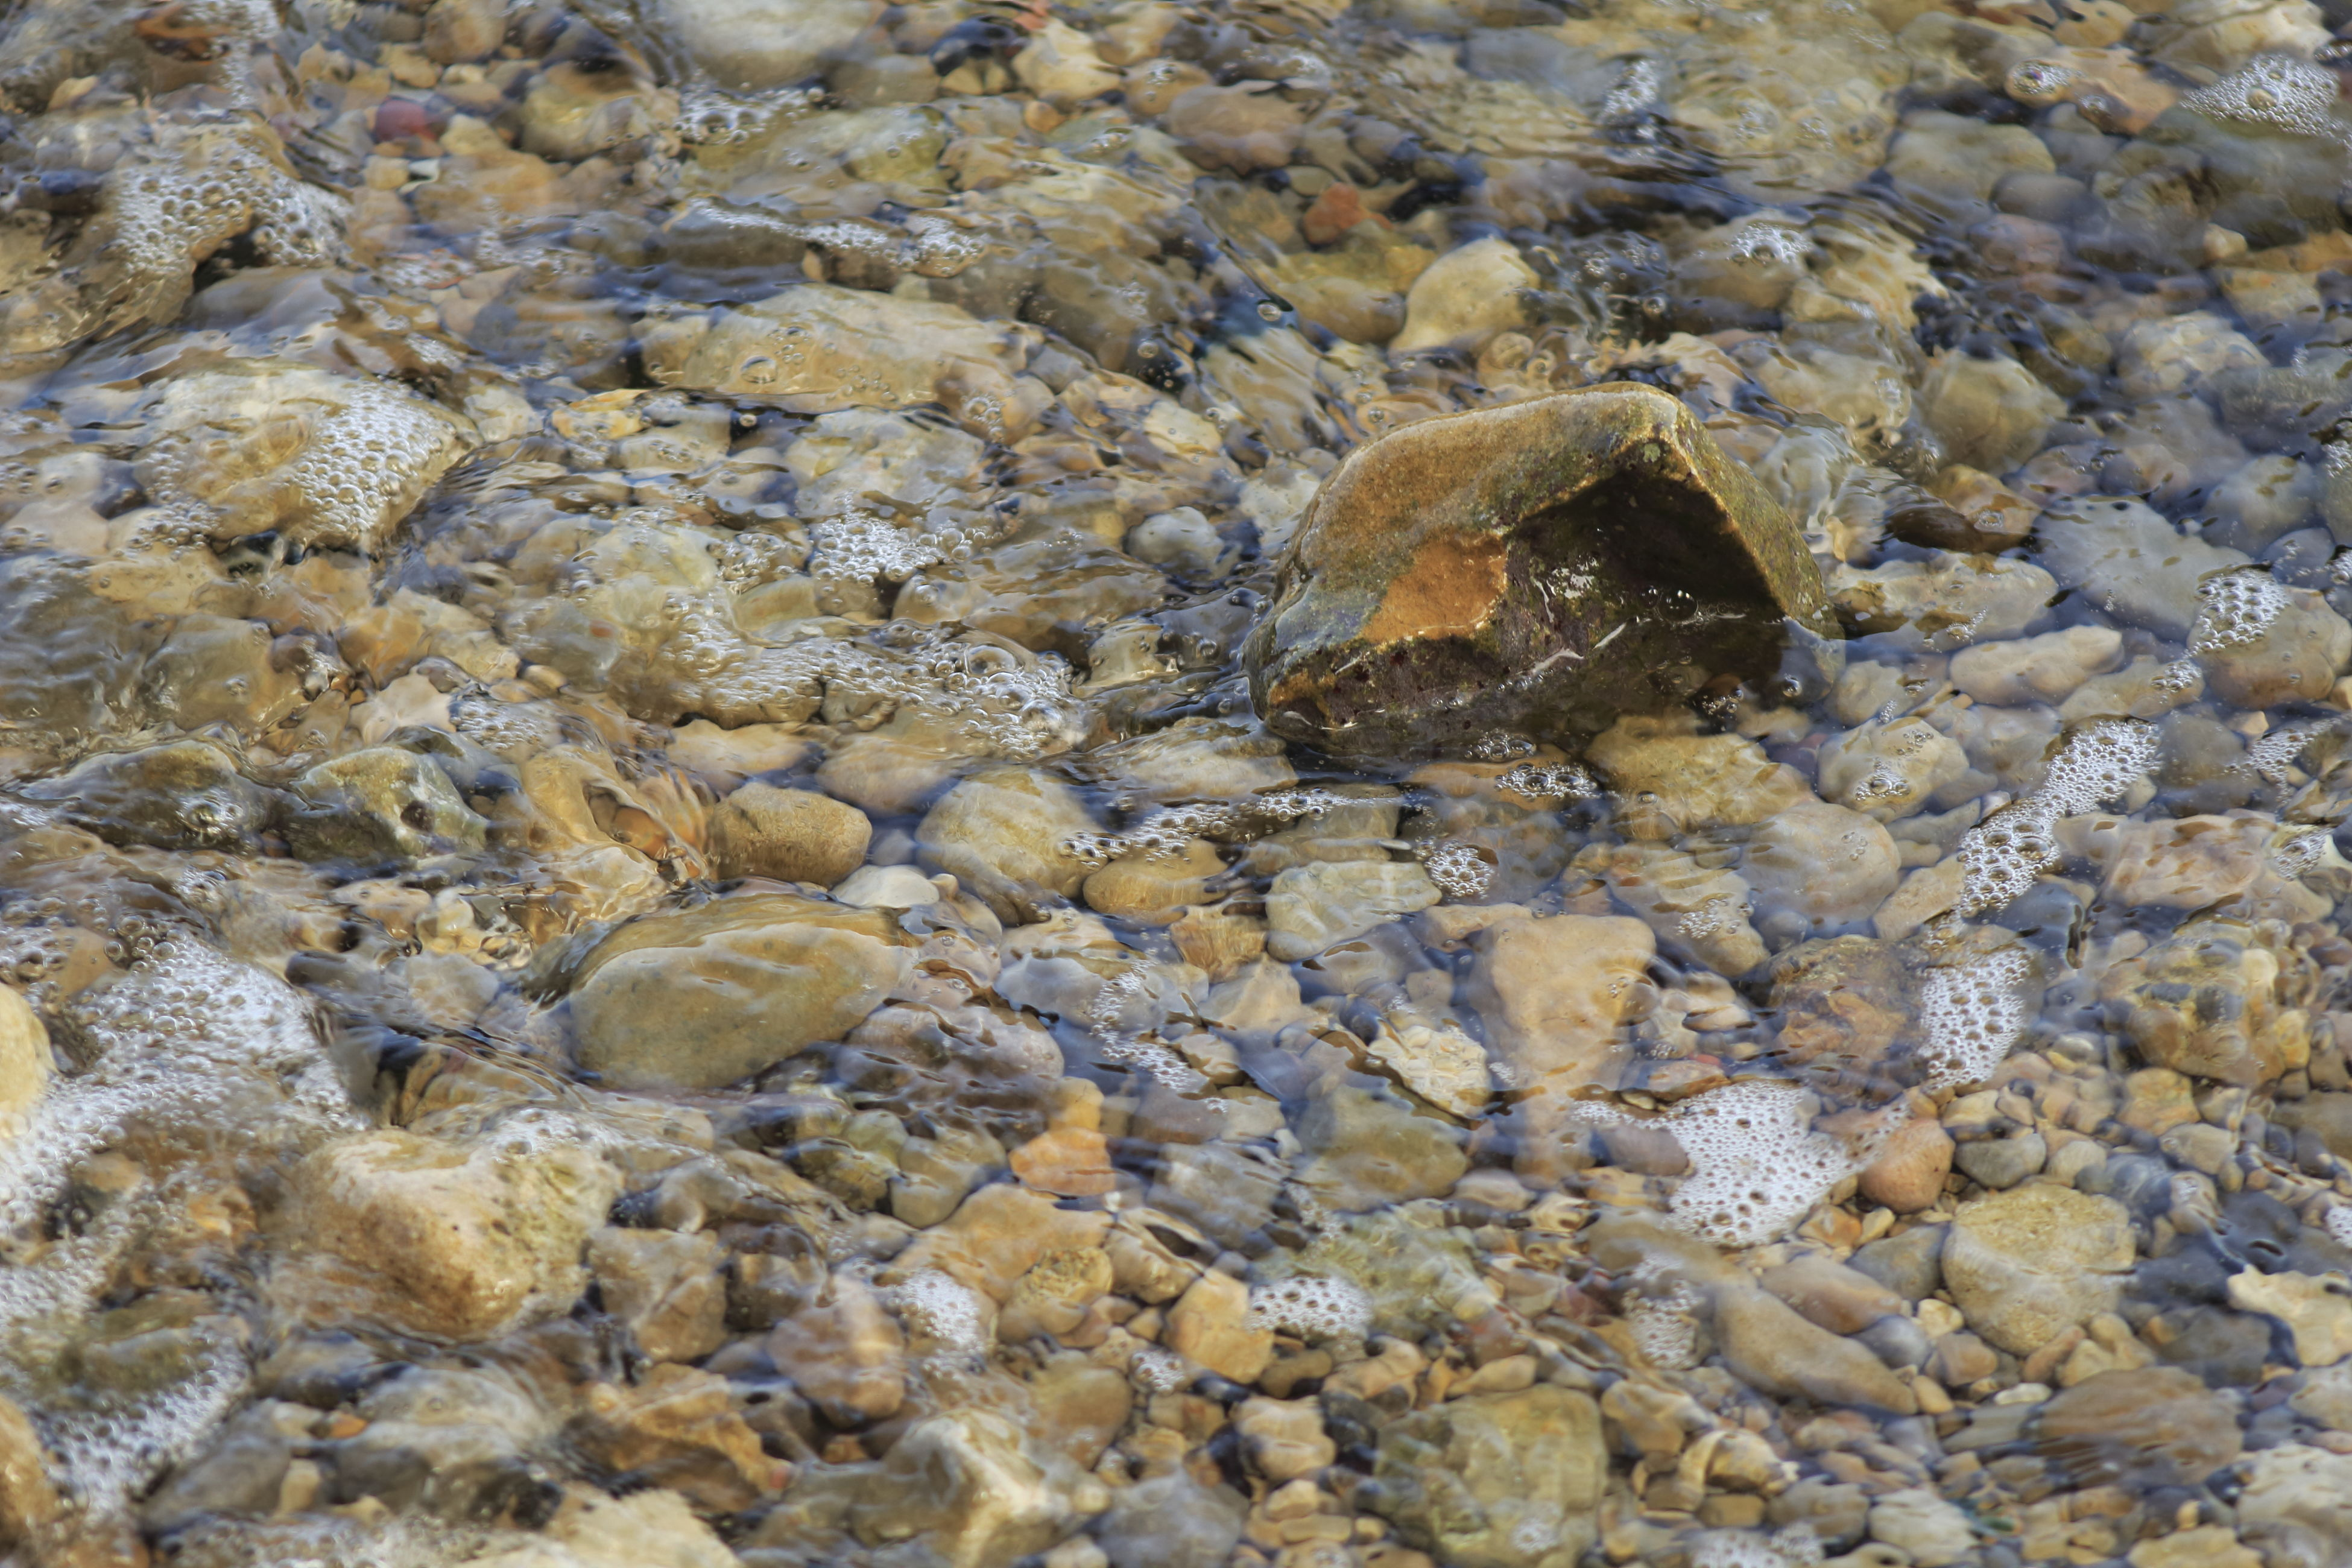 animal themes, animals in the wild, wildlife, one animal, water, high angle view, rock - object, nature, sea life, swimming, stone - object, zoology, fish, day, outdoors, underwater, no people, close-up, pebble